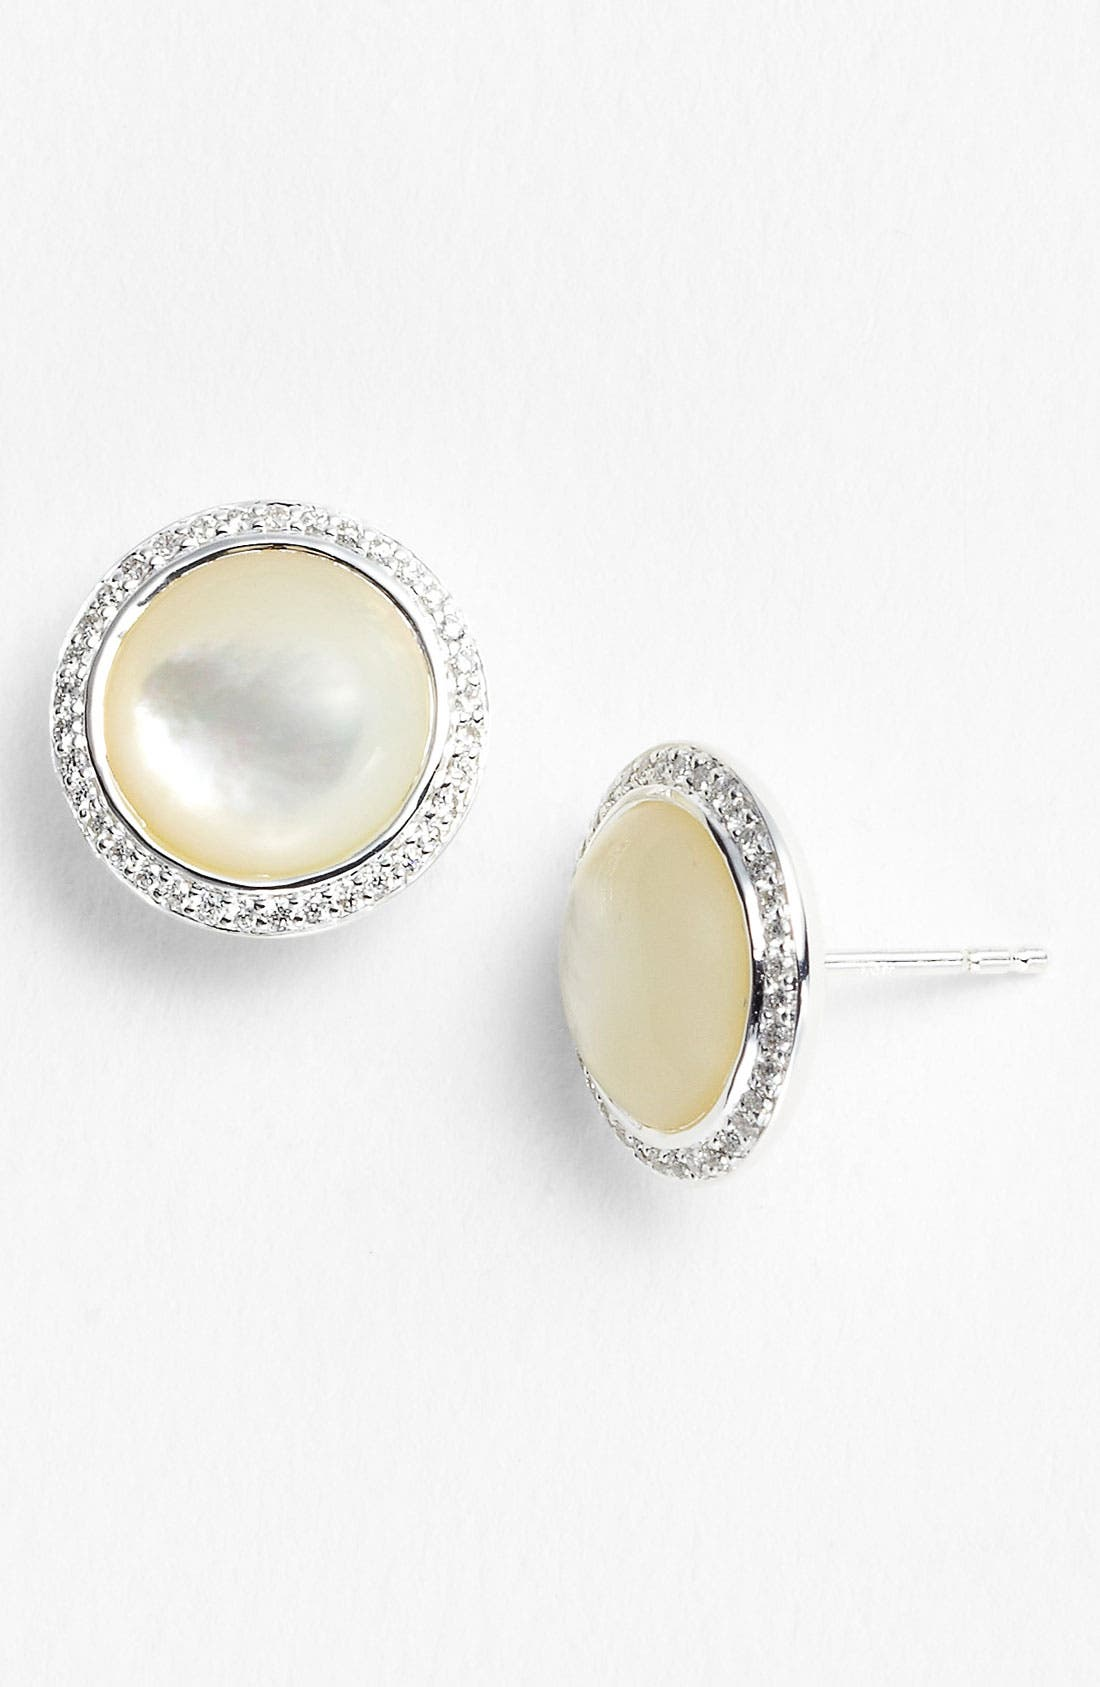 Alternate Image 1 Selected - Ippolita 'Scultura' Diamond & Cabochon Stud Earrings